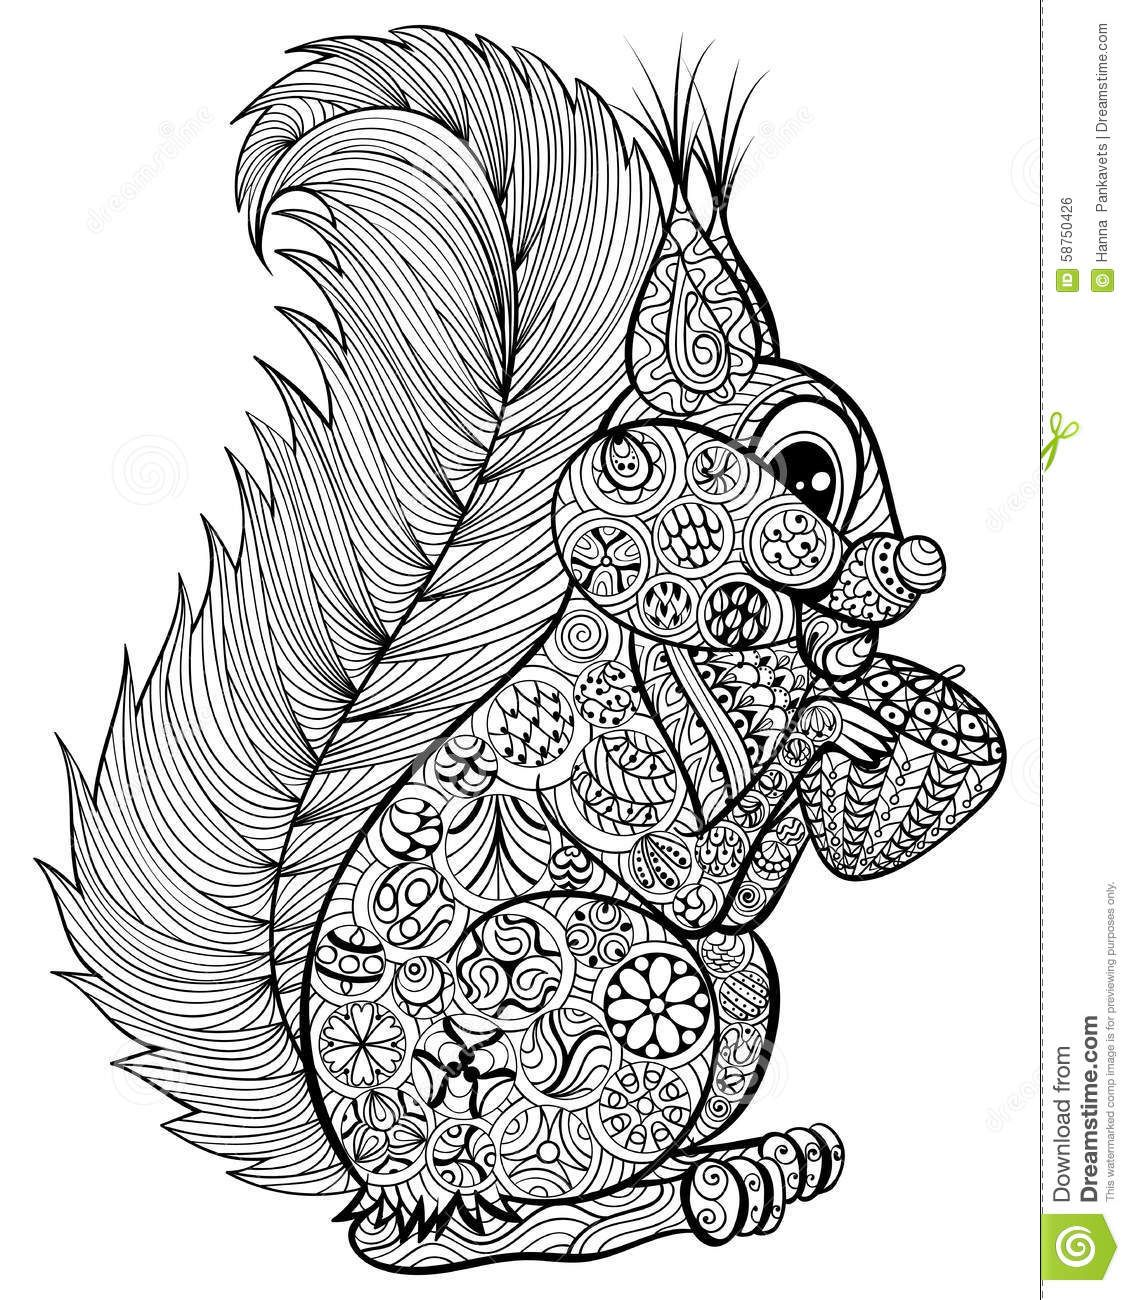 Stress Coloring Pages Animals : Owl coloring pages coloringnu quot stress free